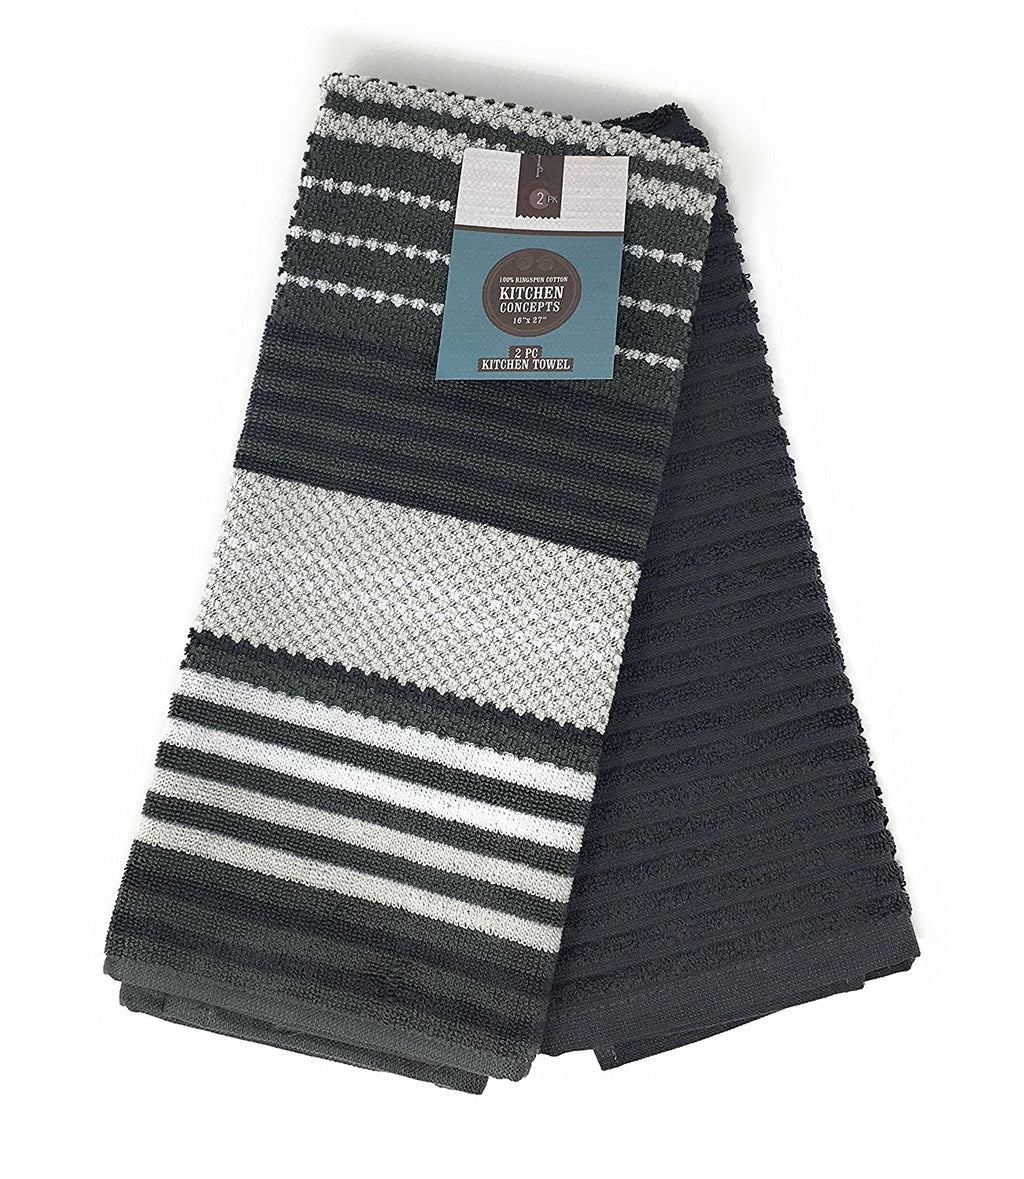 Kitchen Concepts Contempo 2 Piece Kitchen Towel Set (Dark Grey, 1 Set)